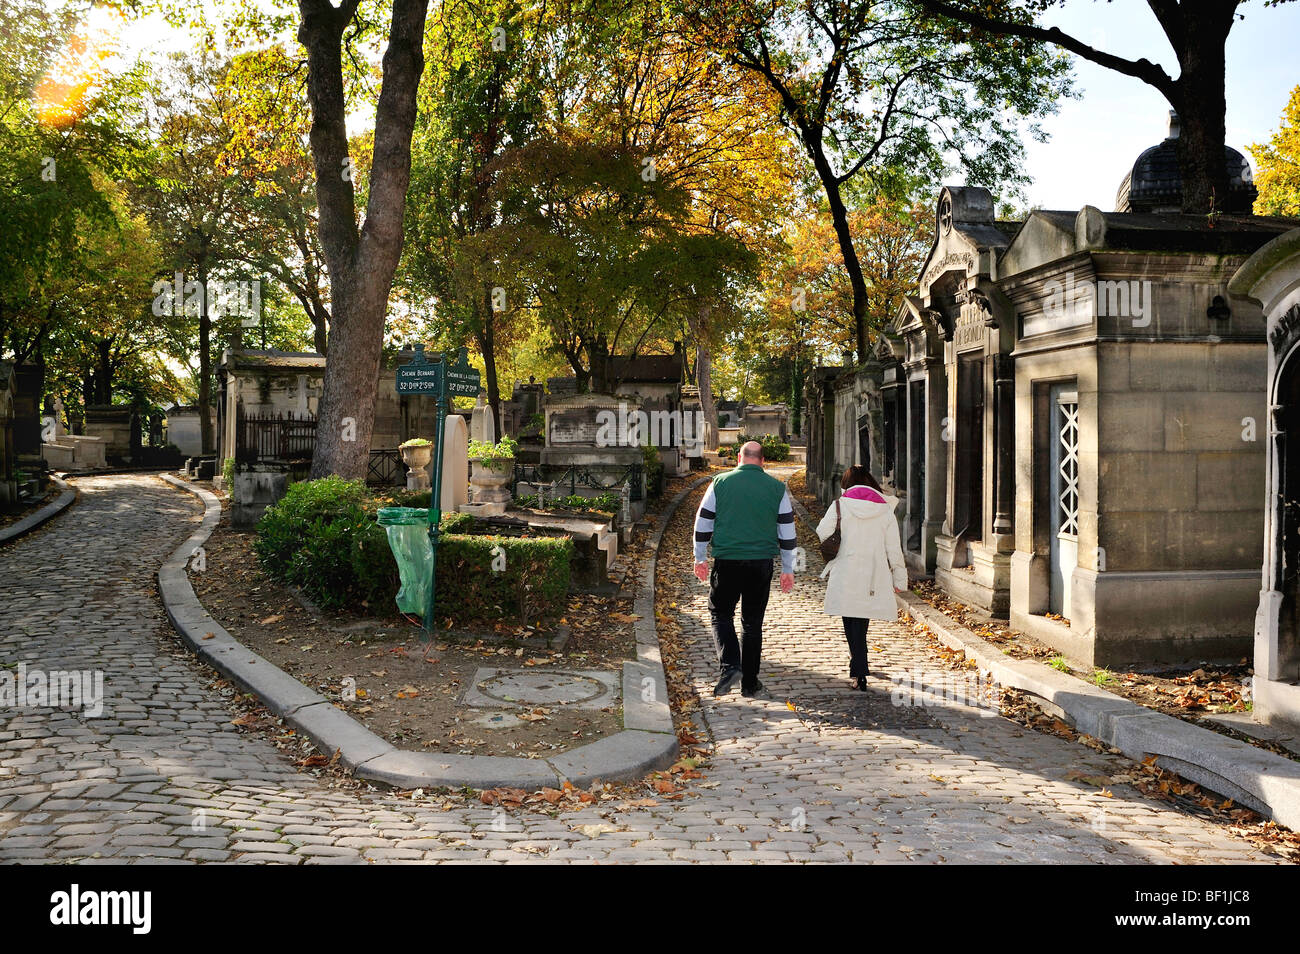 Paris, France - 'Pere Lachaise' Cemetery, Couple Walking on 'Cobbled Stone' Street - Stock Image